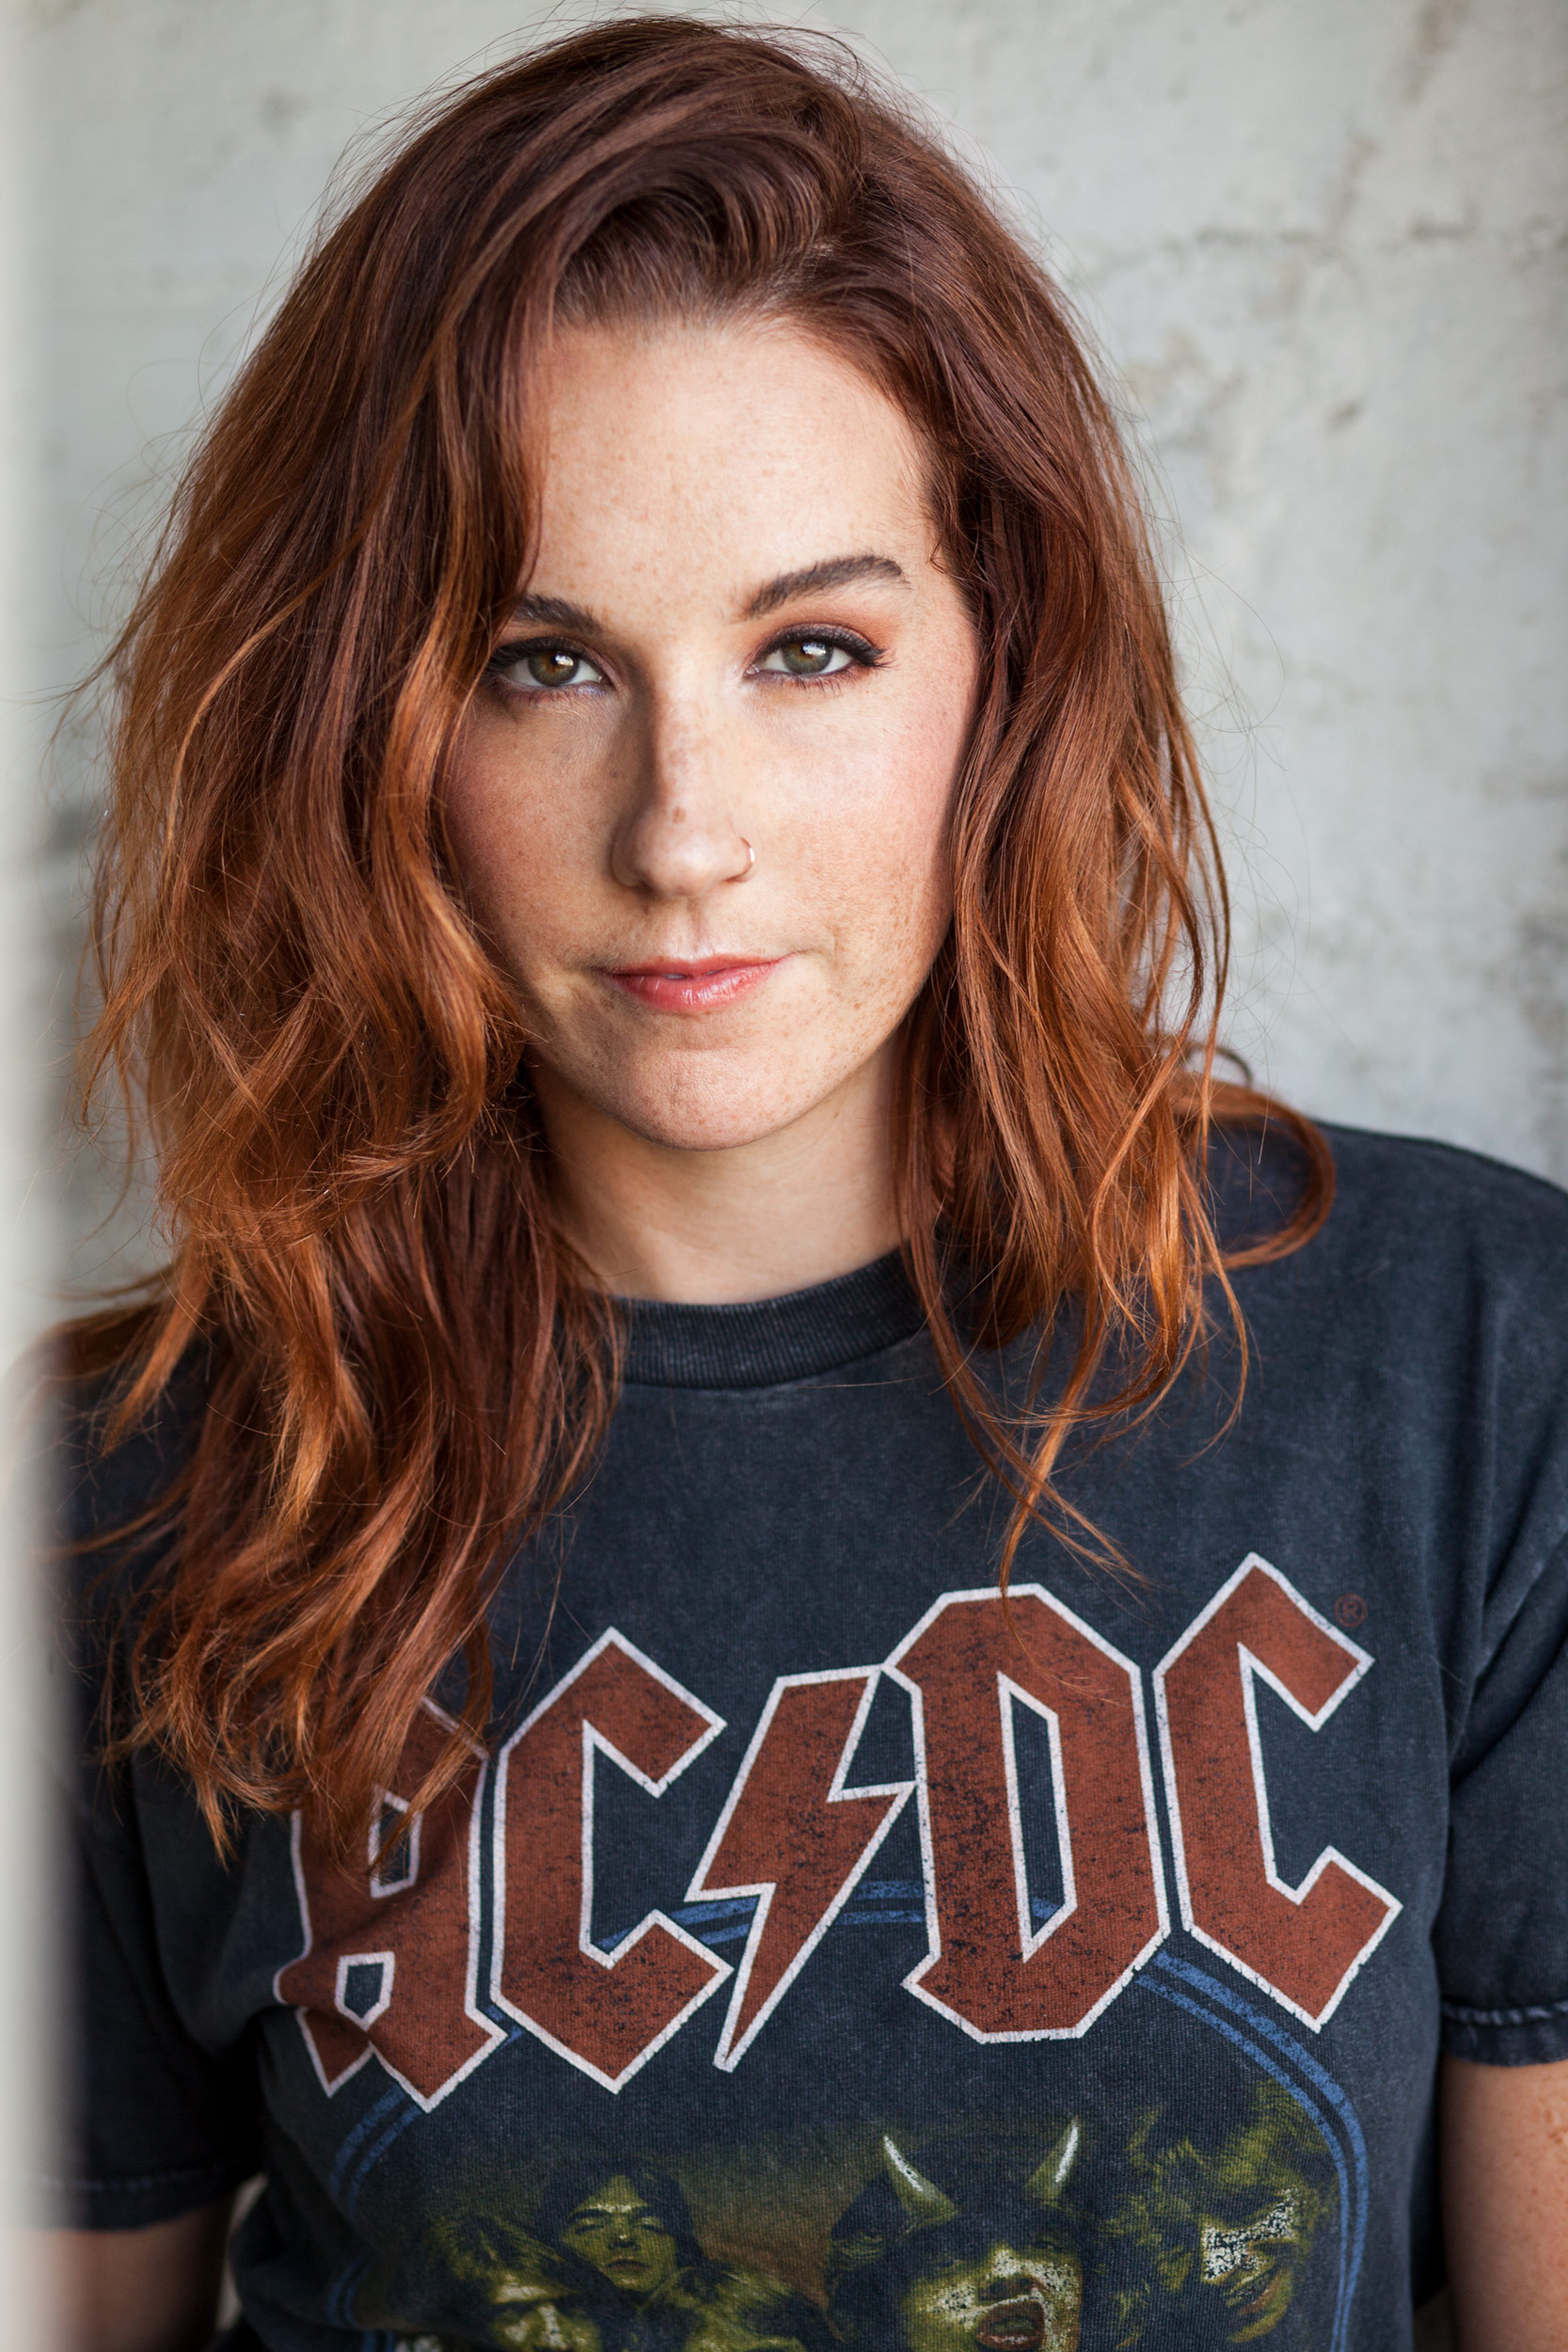 Sarah_Unruh_red_head_headshot_actress.jpg